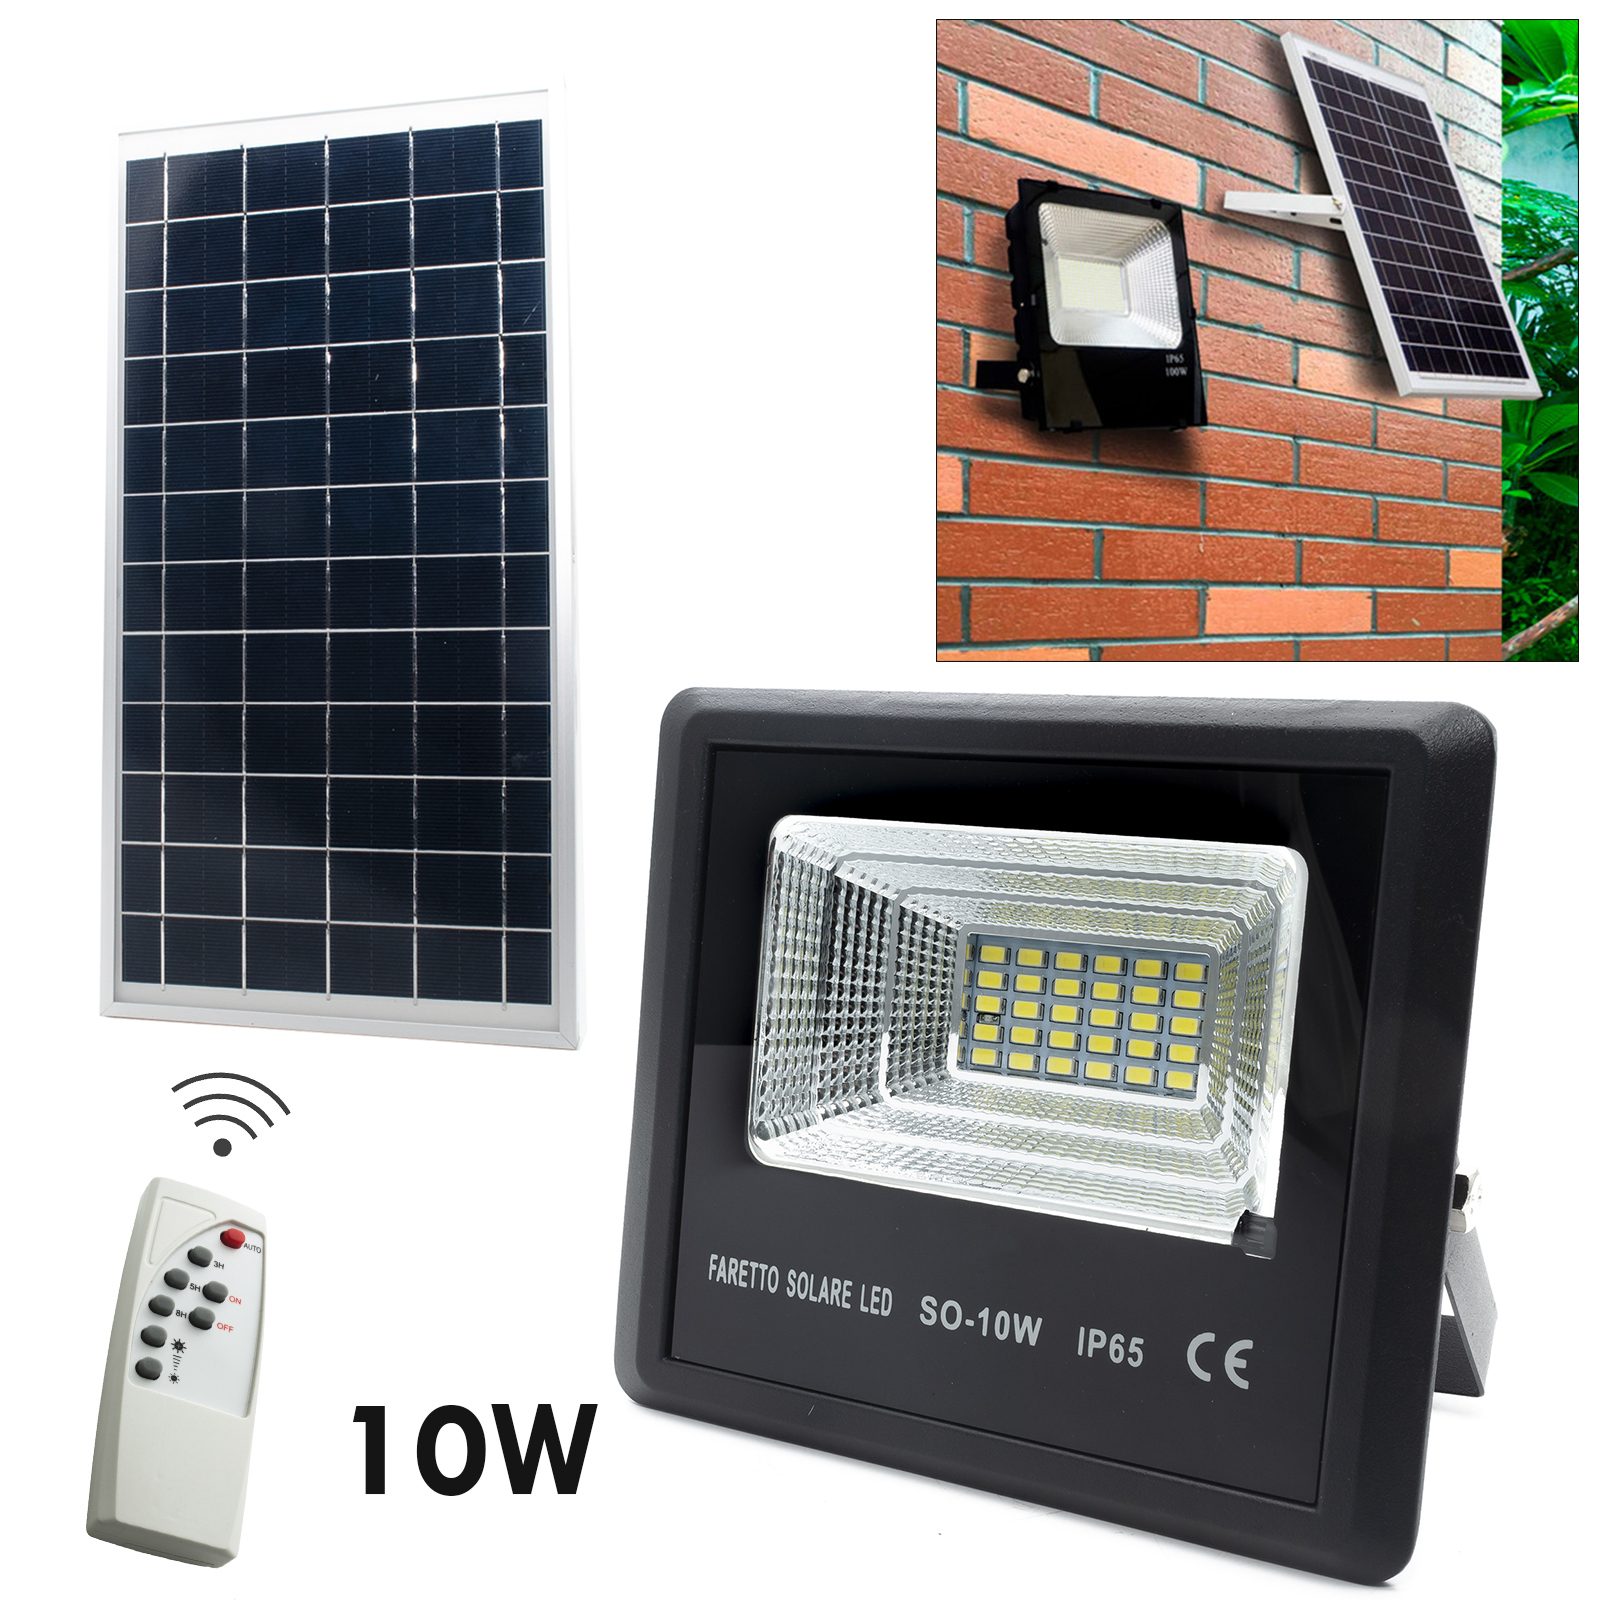 LED spotlight 10W dusk solar light for outdoor garden s